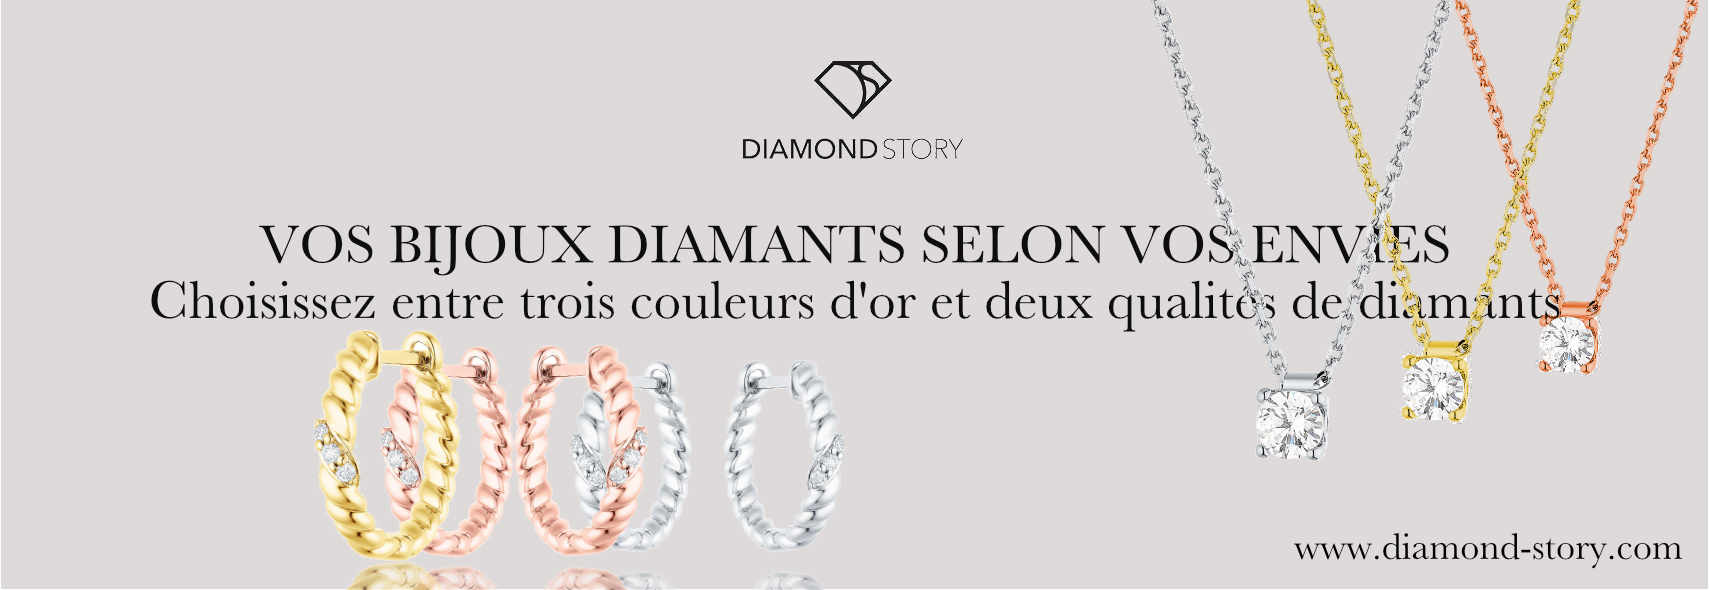 Lien ver diamond-story